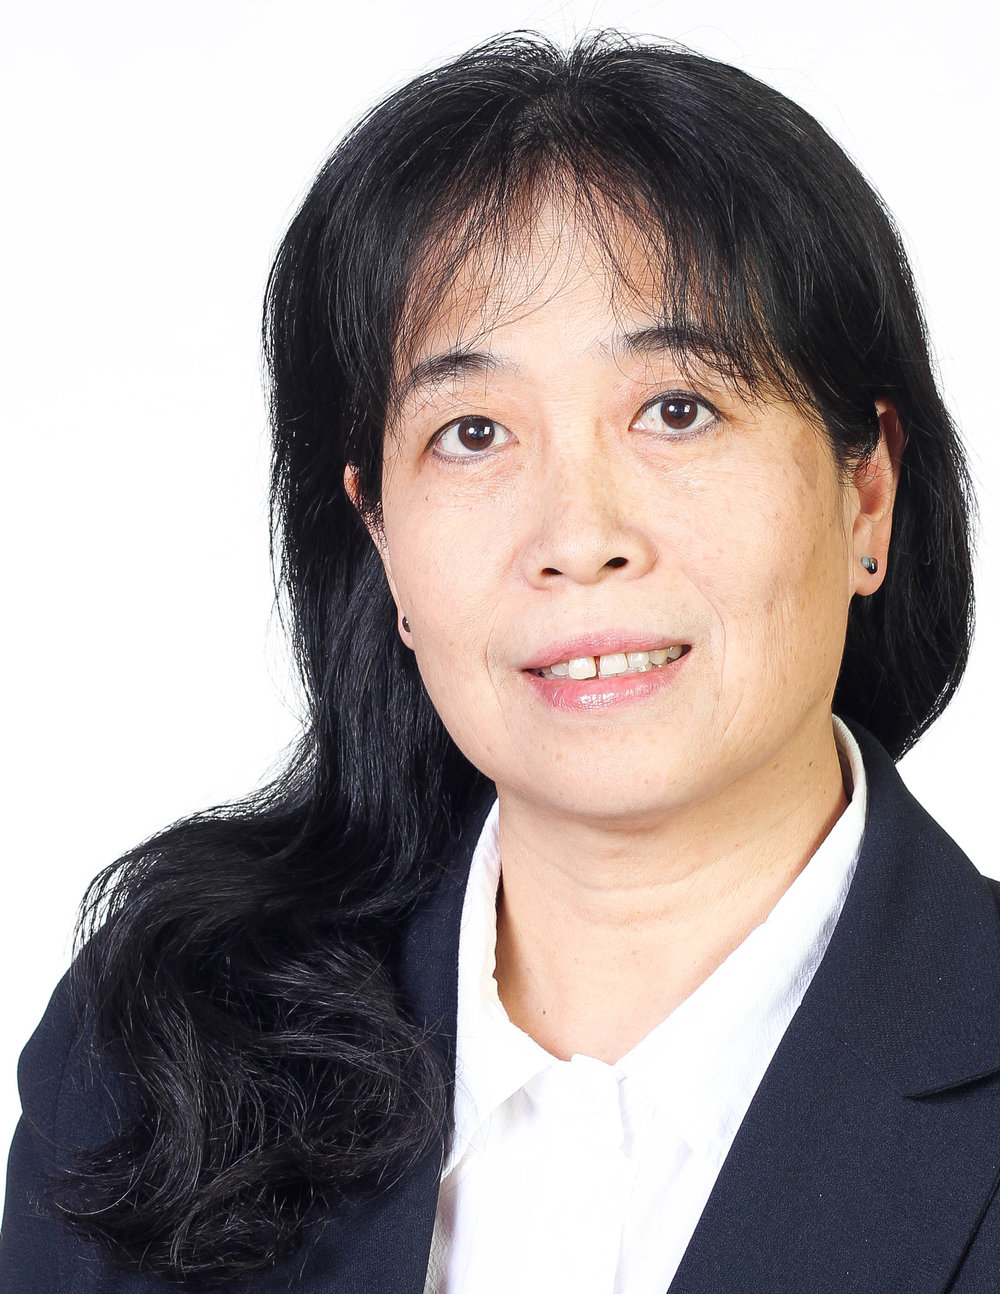 Sue Chen 陳素雲 - Listing Specialist, Buyer Specialist - Team Leader   My clients know that whenever they use my services, they get the absolute best customer service, honest advice and professionalism. My job is to help you realize your real estate dreams, while keeping your interests firstI am a native of Taiwan, I immigrated to Canada at the age of 21 and started a family restaurant in Hamilton, Ontario.  I have over 30 years of entrepreneurial experience gained from running my restaurant business which then sparked my journey into the real estate business.  When I am not working(which is rare) I am spending time with my 4 boys, watching netflix or walking my 2 fur babies: Molly & Nini.   I would love to meet you and have a chat!  REALTOR® is my job title, but being honest with you and always having your interests first is my job.